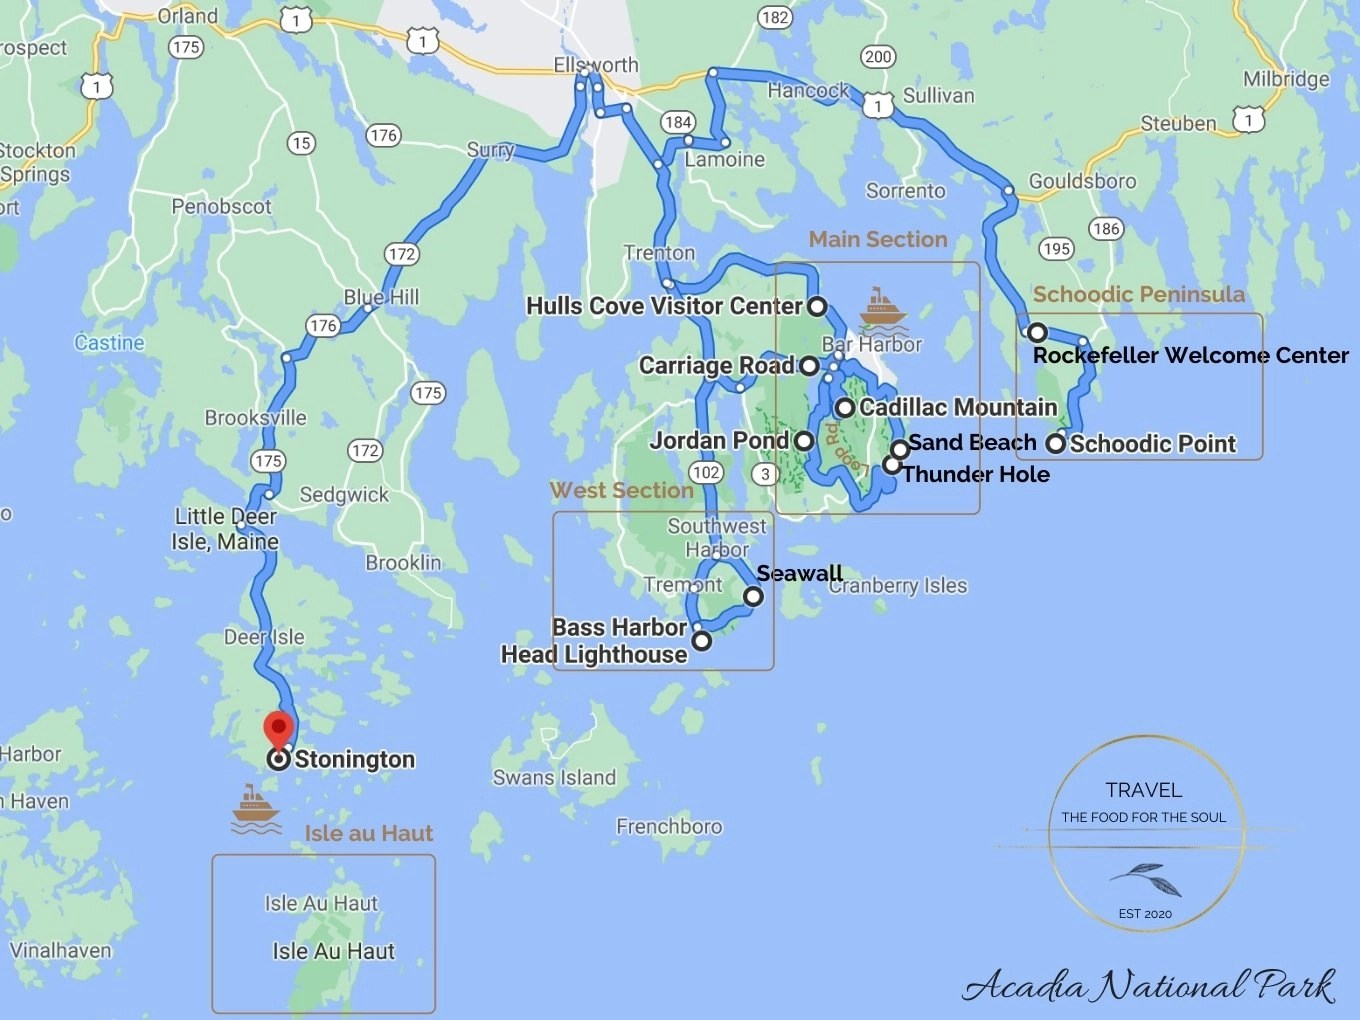 Acadia National Park Attractions Map